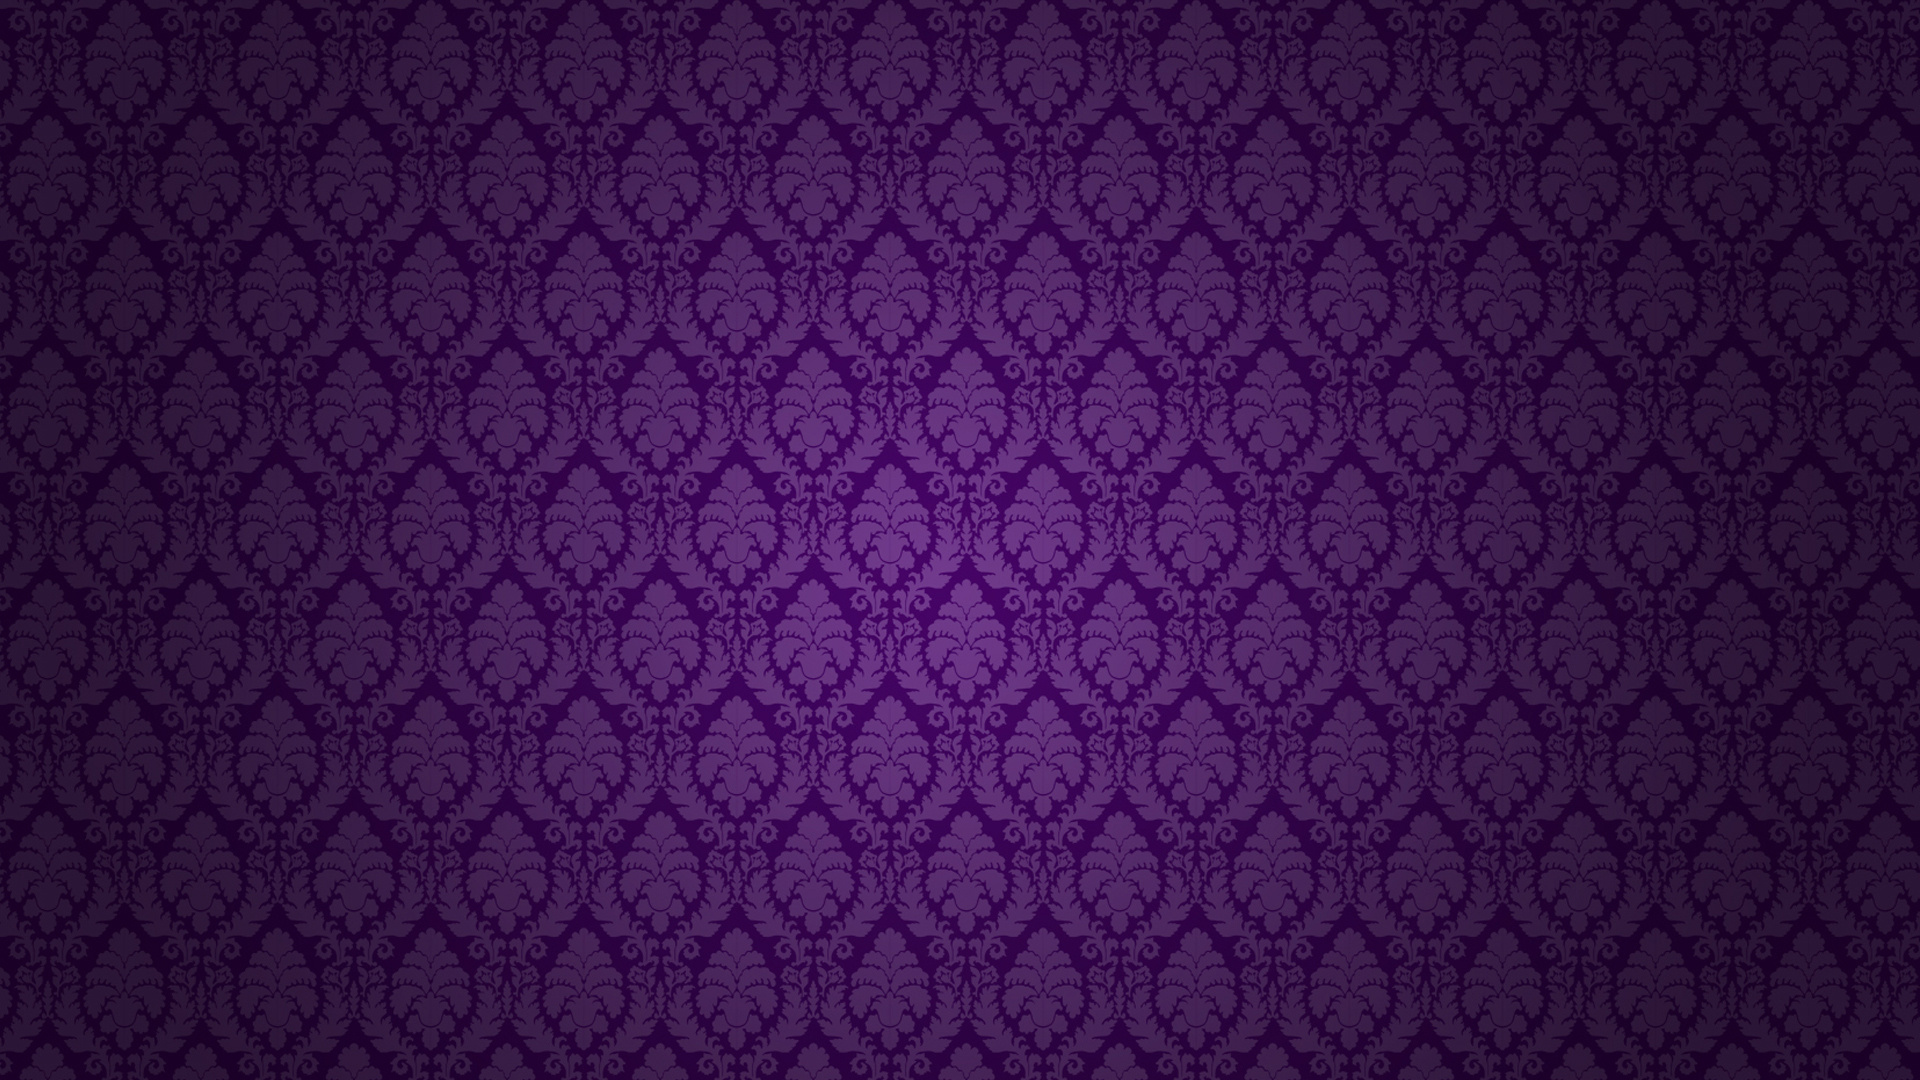 20 Spendid Purple Backgrounds for Download Creatives 1920x1080